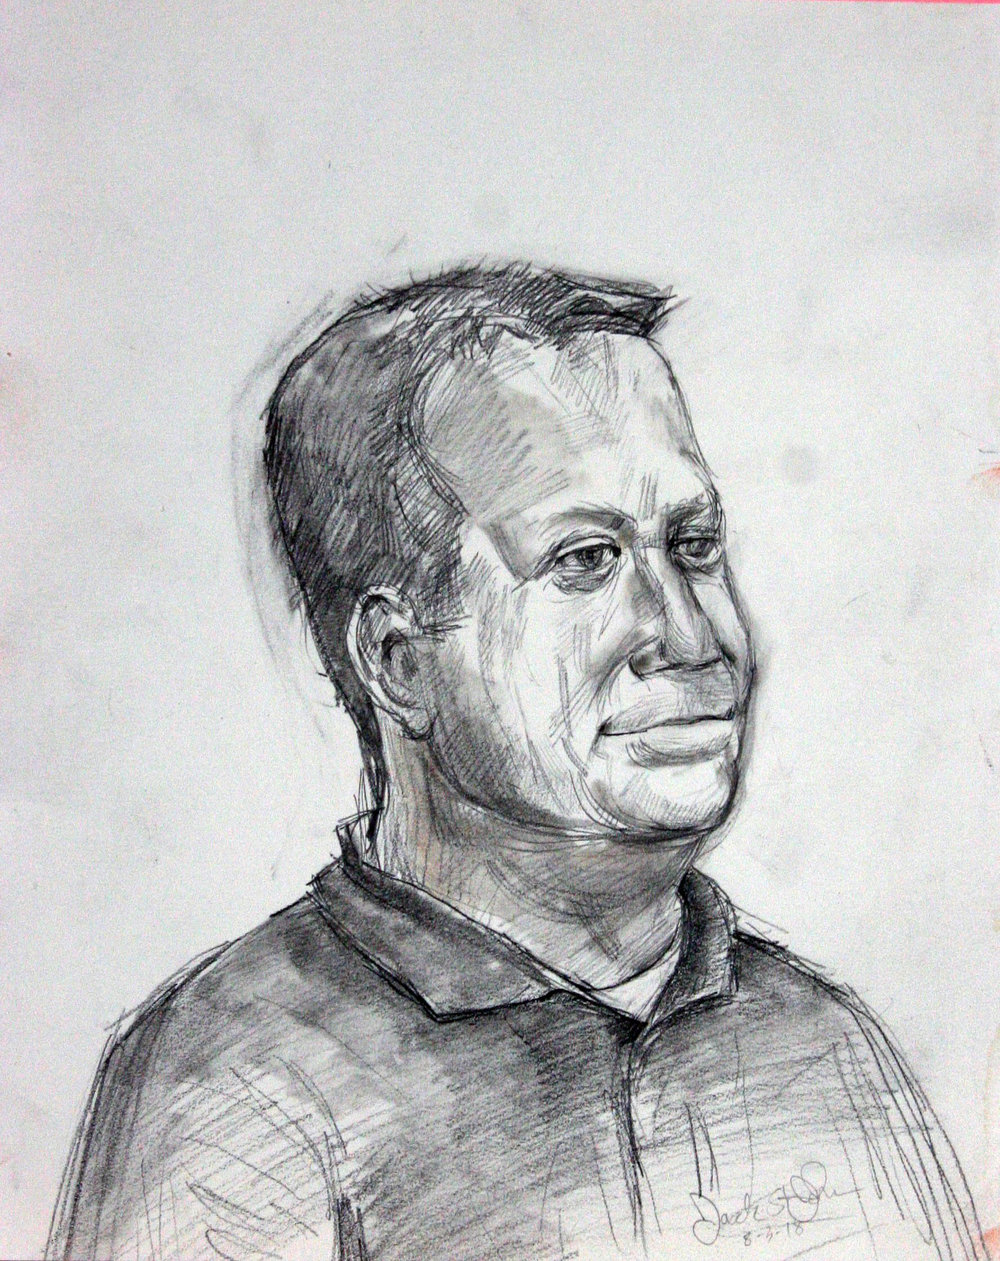 Jack St. John did this drawing.